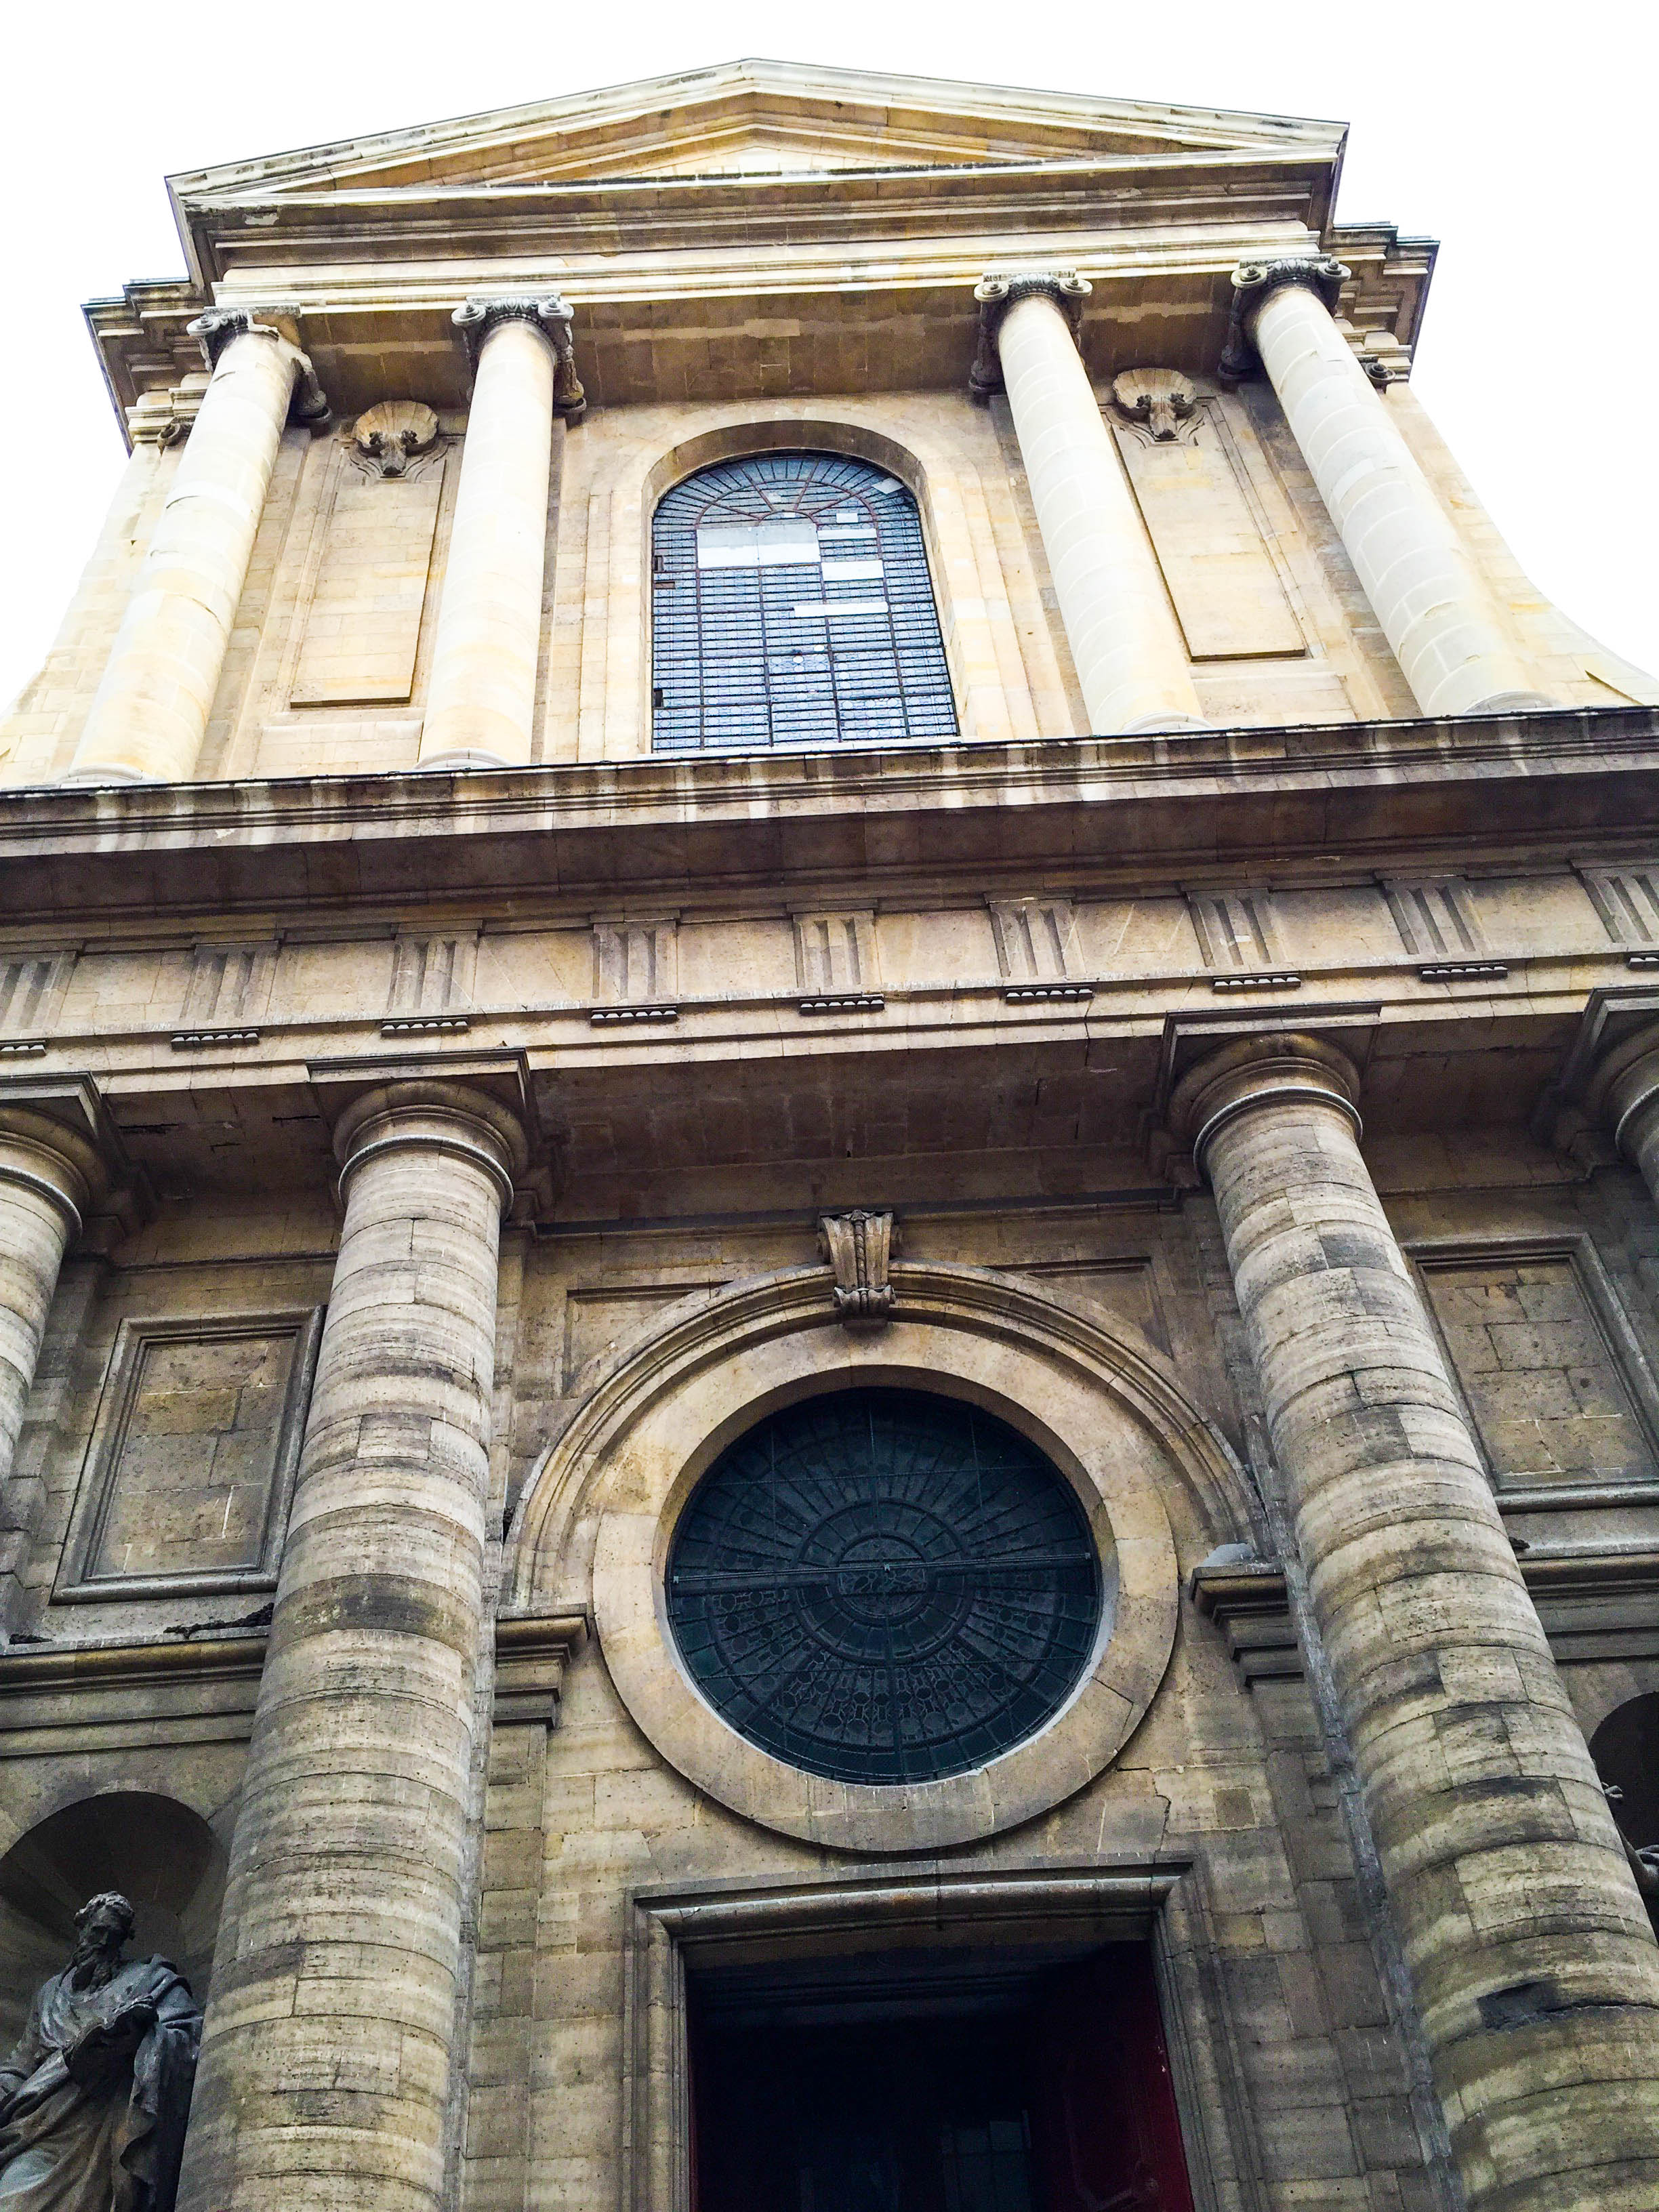 One of the many cathedrals in Paris.